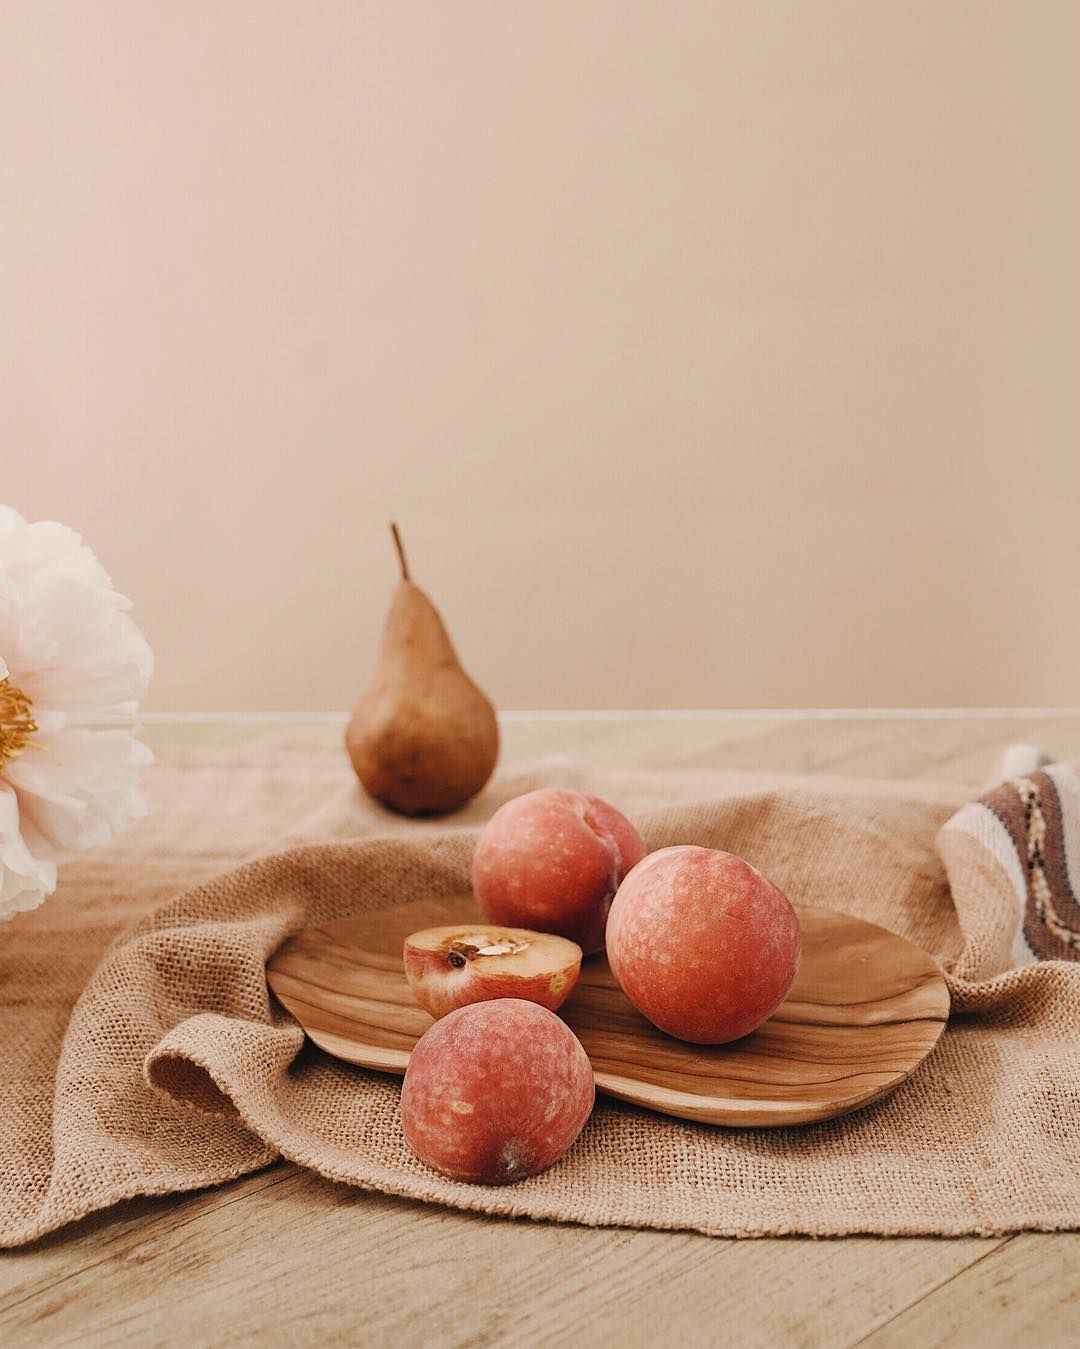 Everything Is Peachy Fruit Photography Food Food Photography